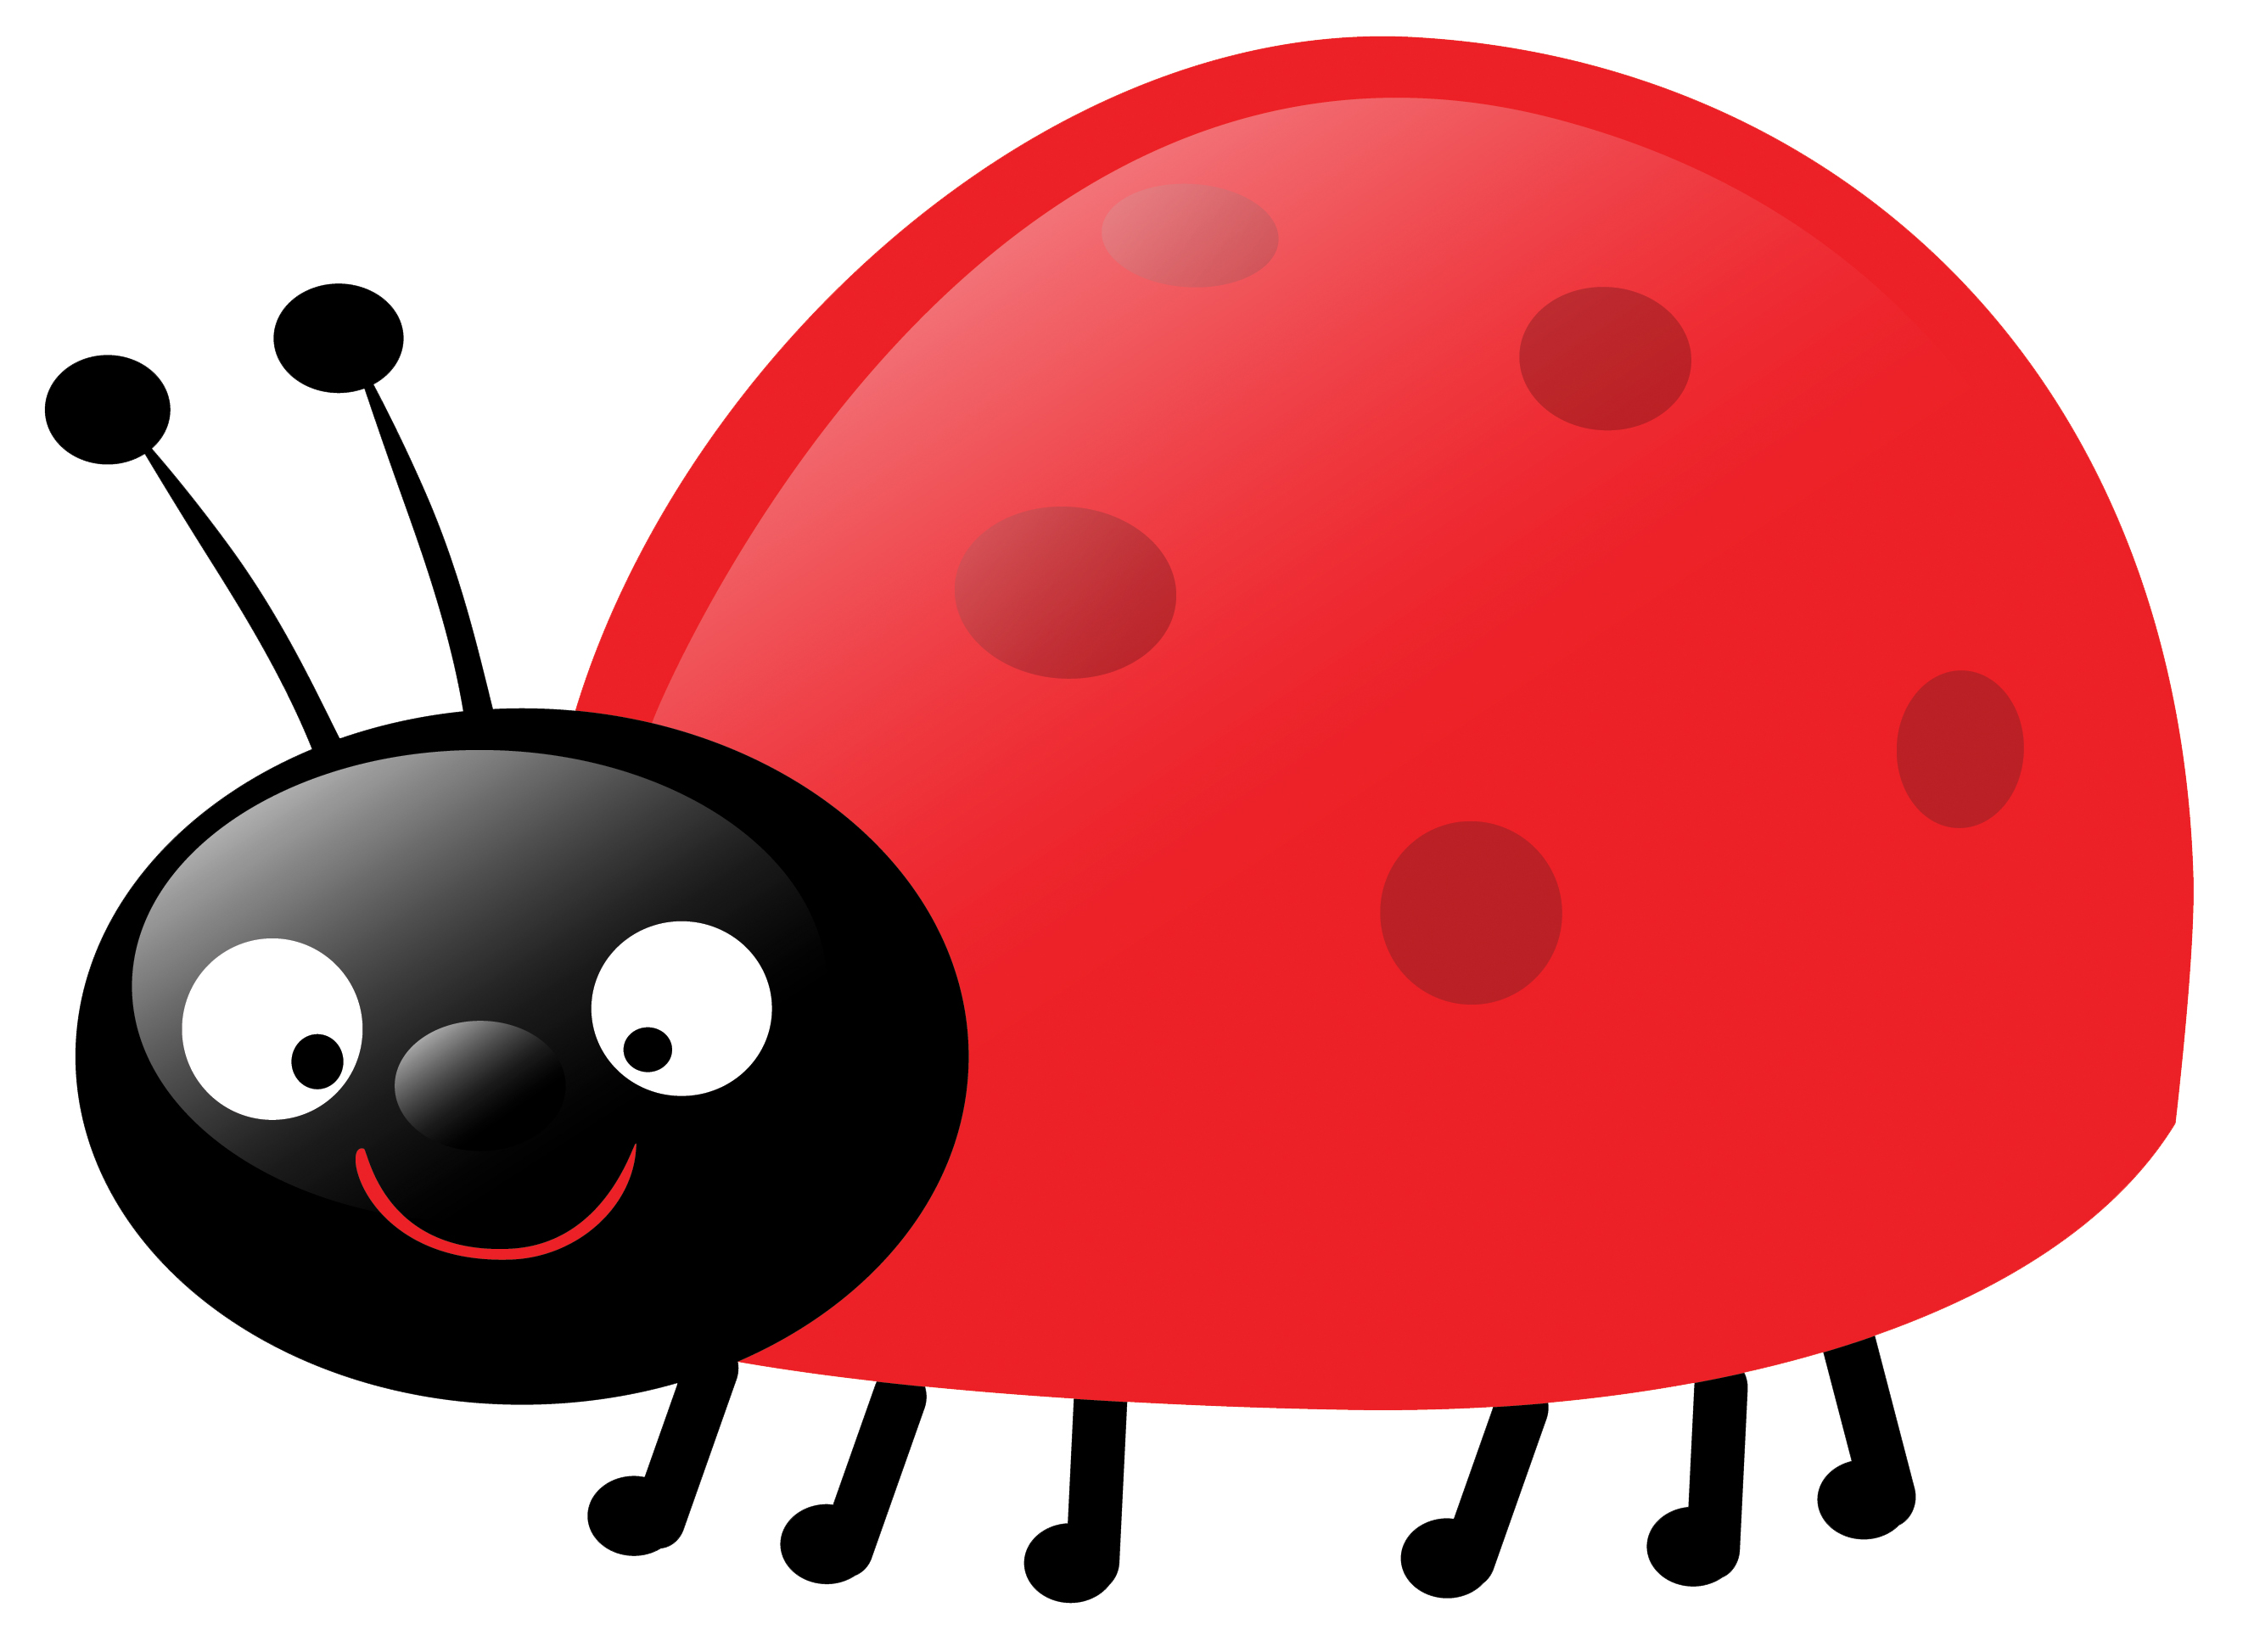 62 images of Cute Ladybug Clipart . You can use these free cliparts ...